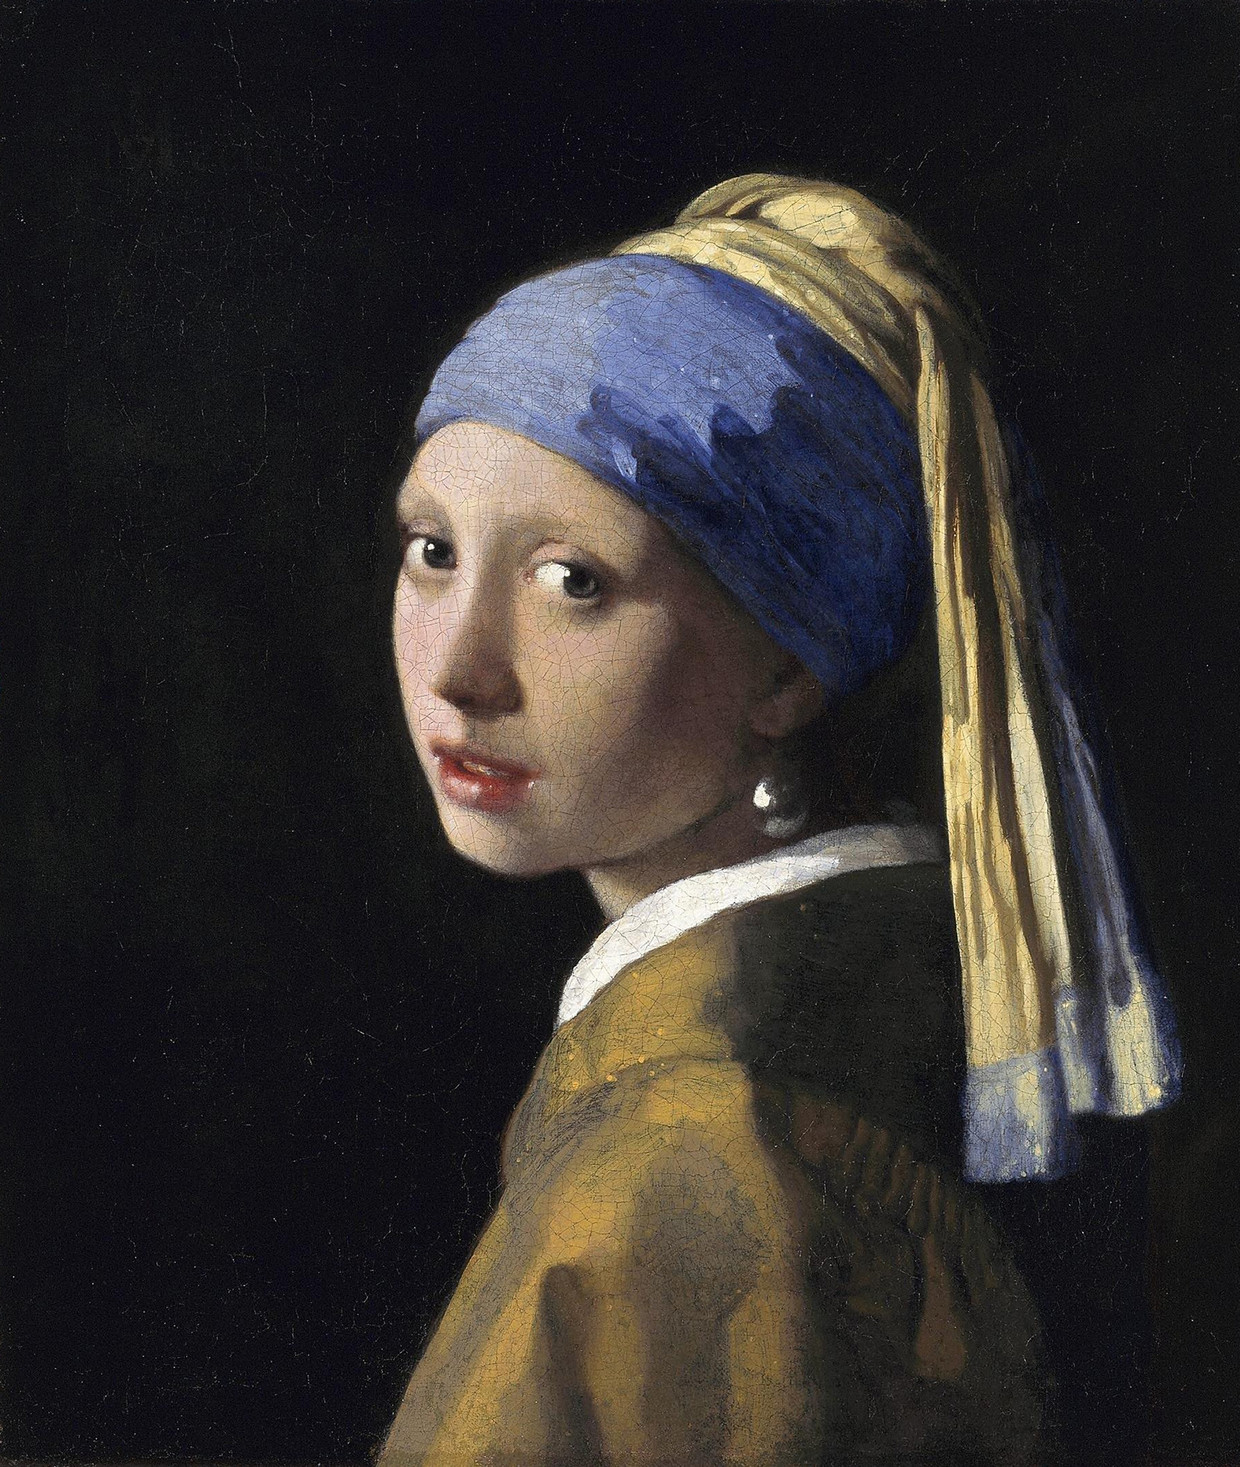 Meisje met de parel, Johannes Vermeer. Circa 1665.  Beeld Corbis via Getty Images